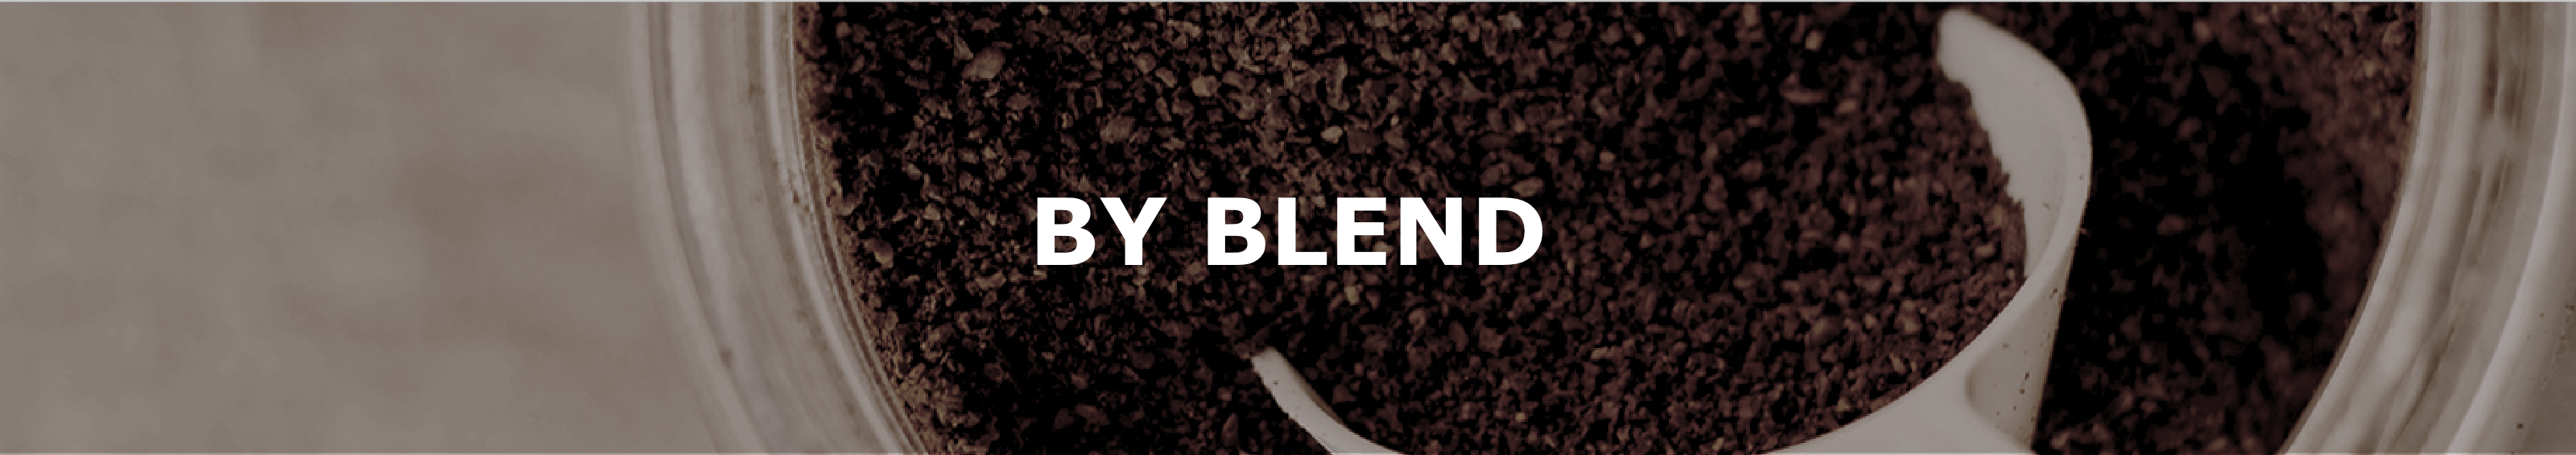 Shop By Blend